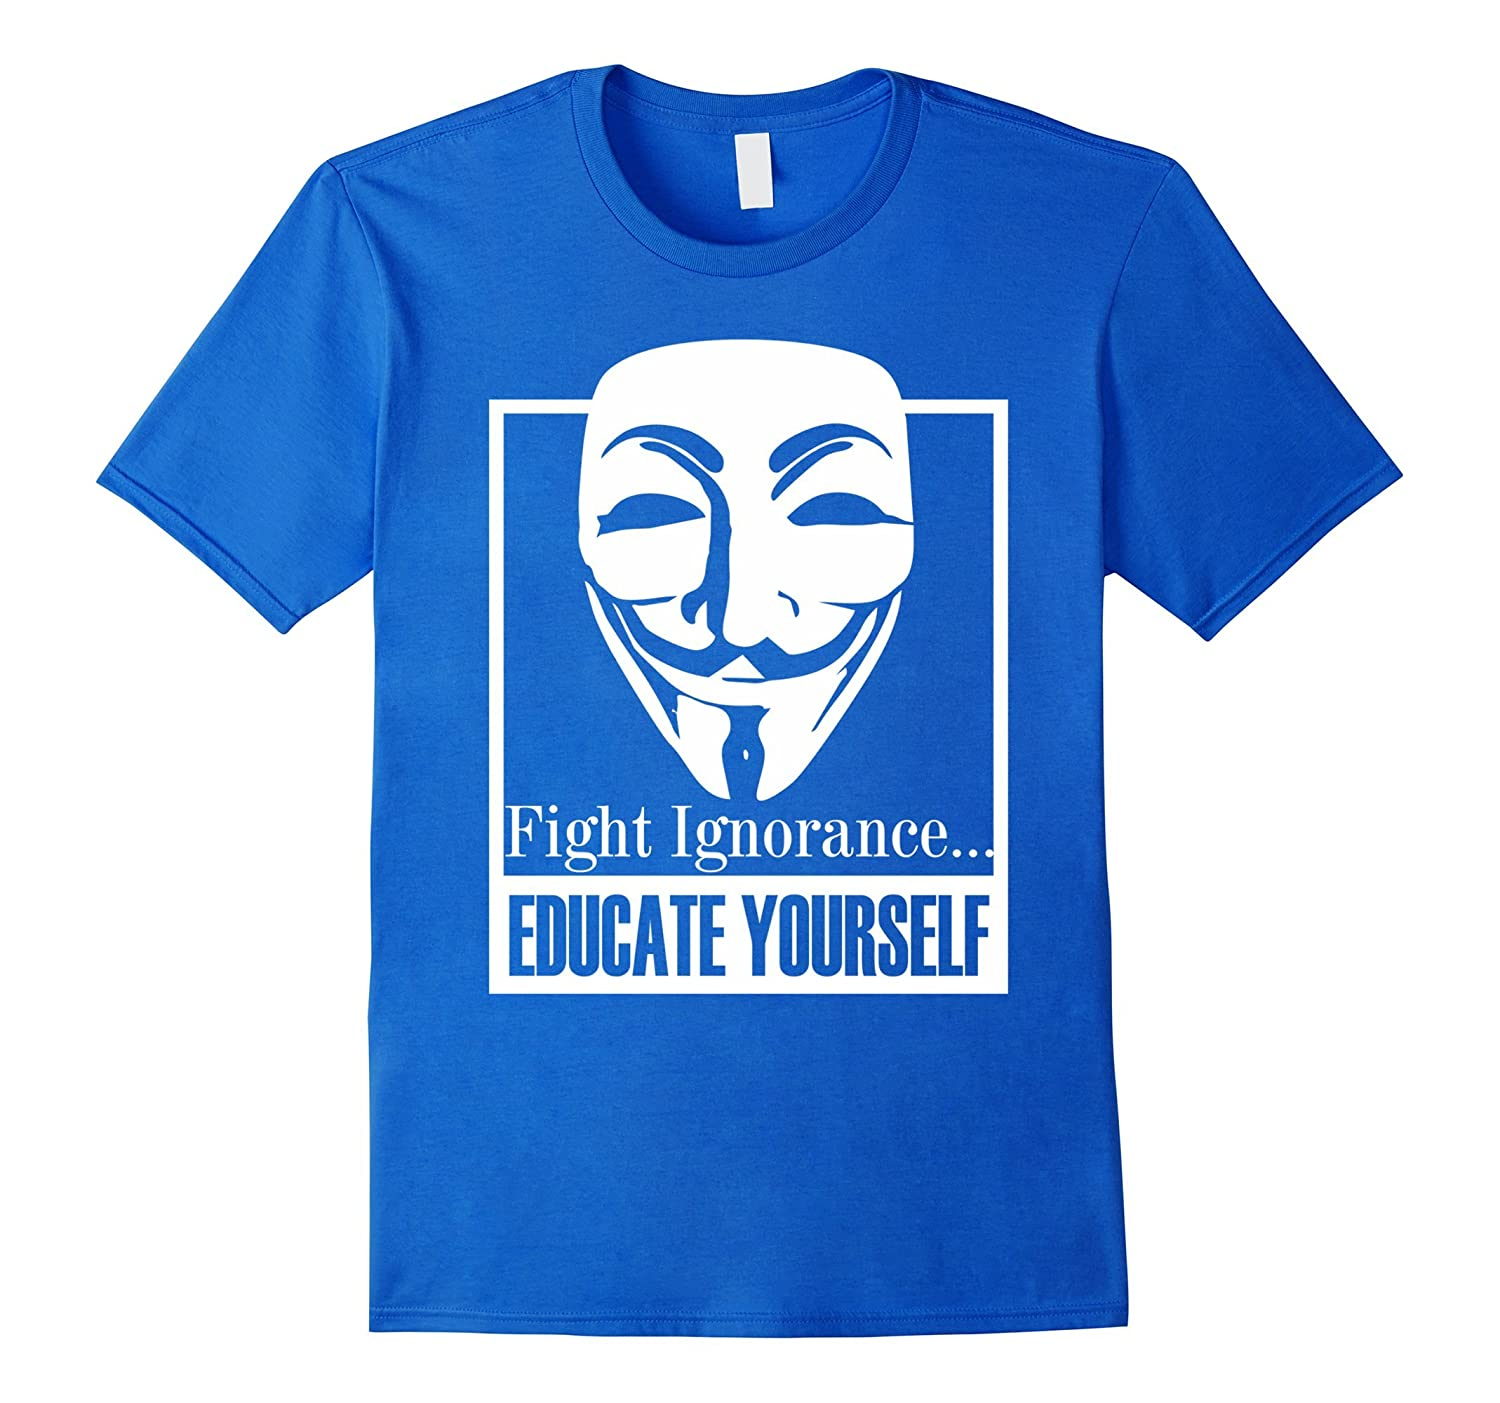 We Are Anonymous Shirt Gifts Hacker Coding Shirt Programmer-TJ